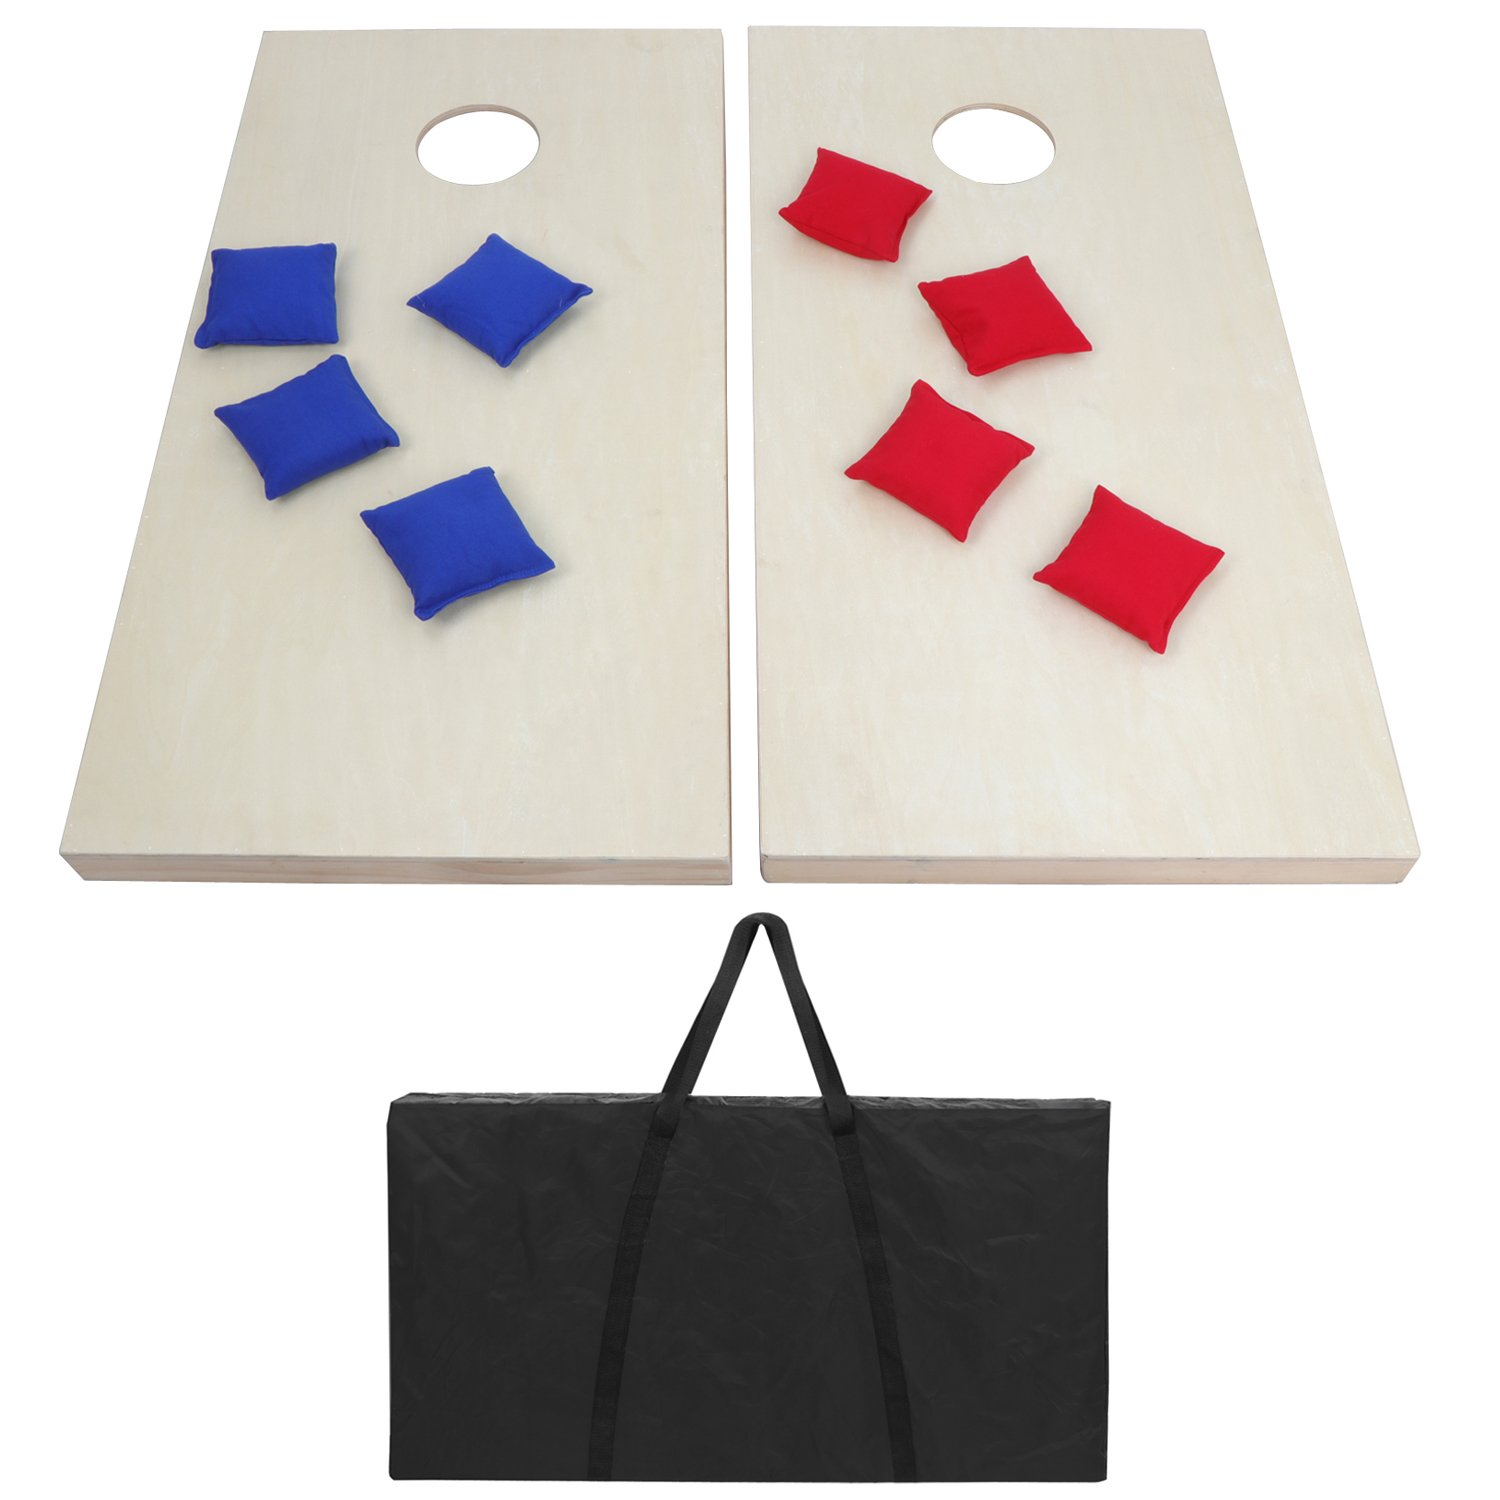 F2C Portable Aluminum/Wood/PVC Framed Bean Bag Cornhole Toss Game Set Boards 3FT2FT/4FT2FT with 8 Bean Bags and Carrying Cases Bags